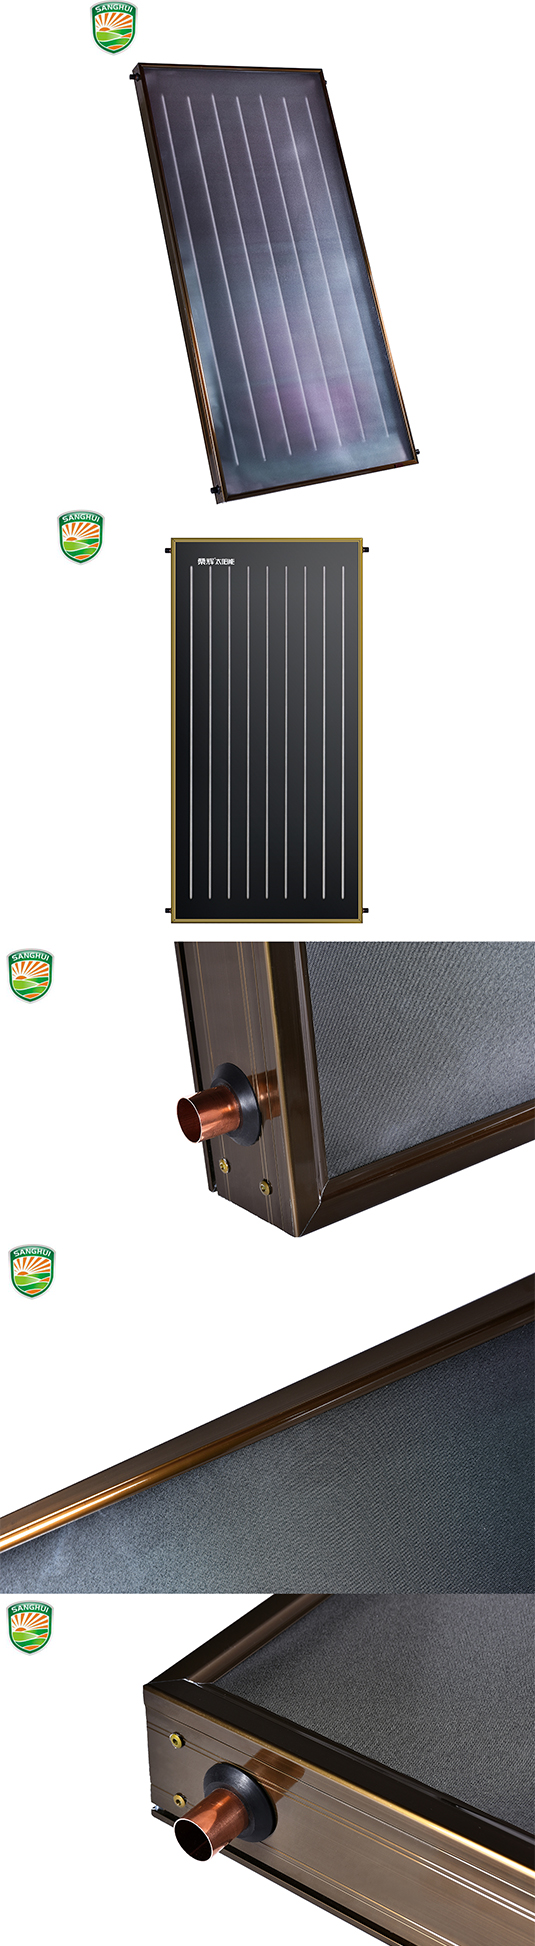 SHe-AO sun power solar water heaterSolar Water Heater Collector For Water Heater System